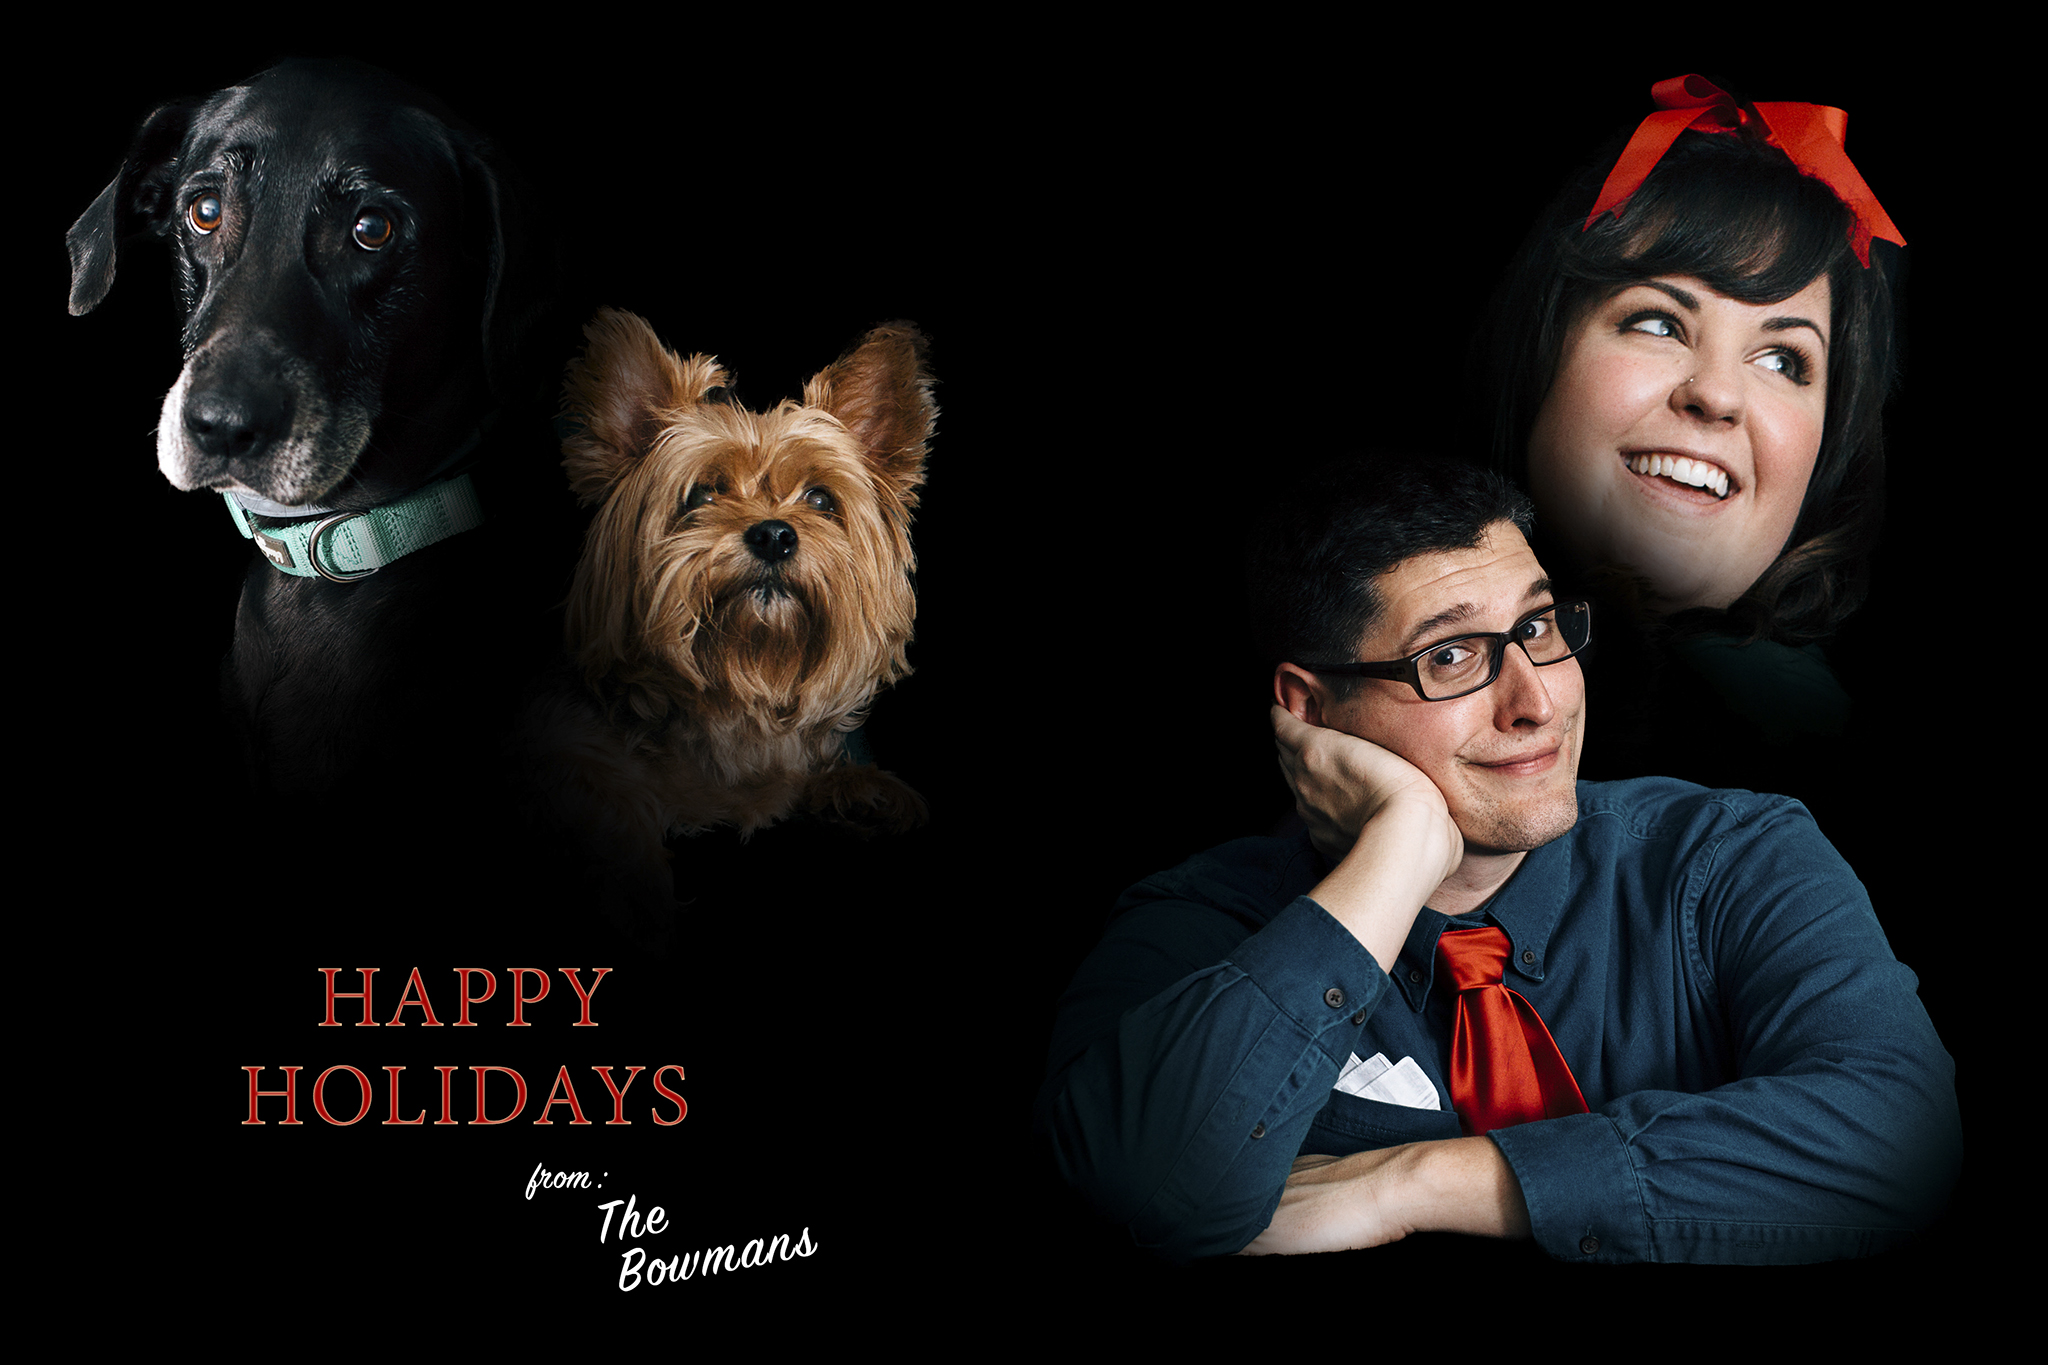 Goofy holiday card of family + dogs